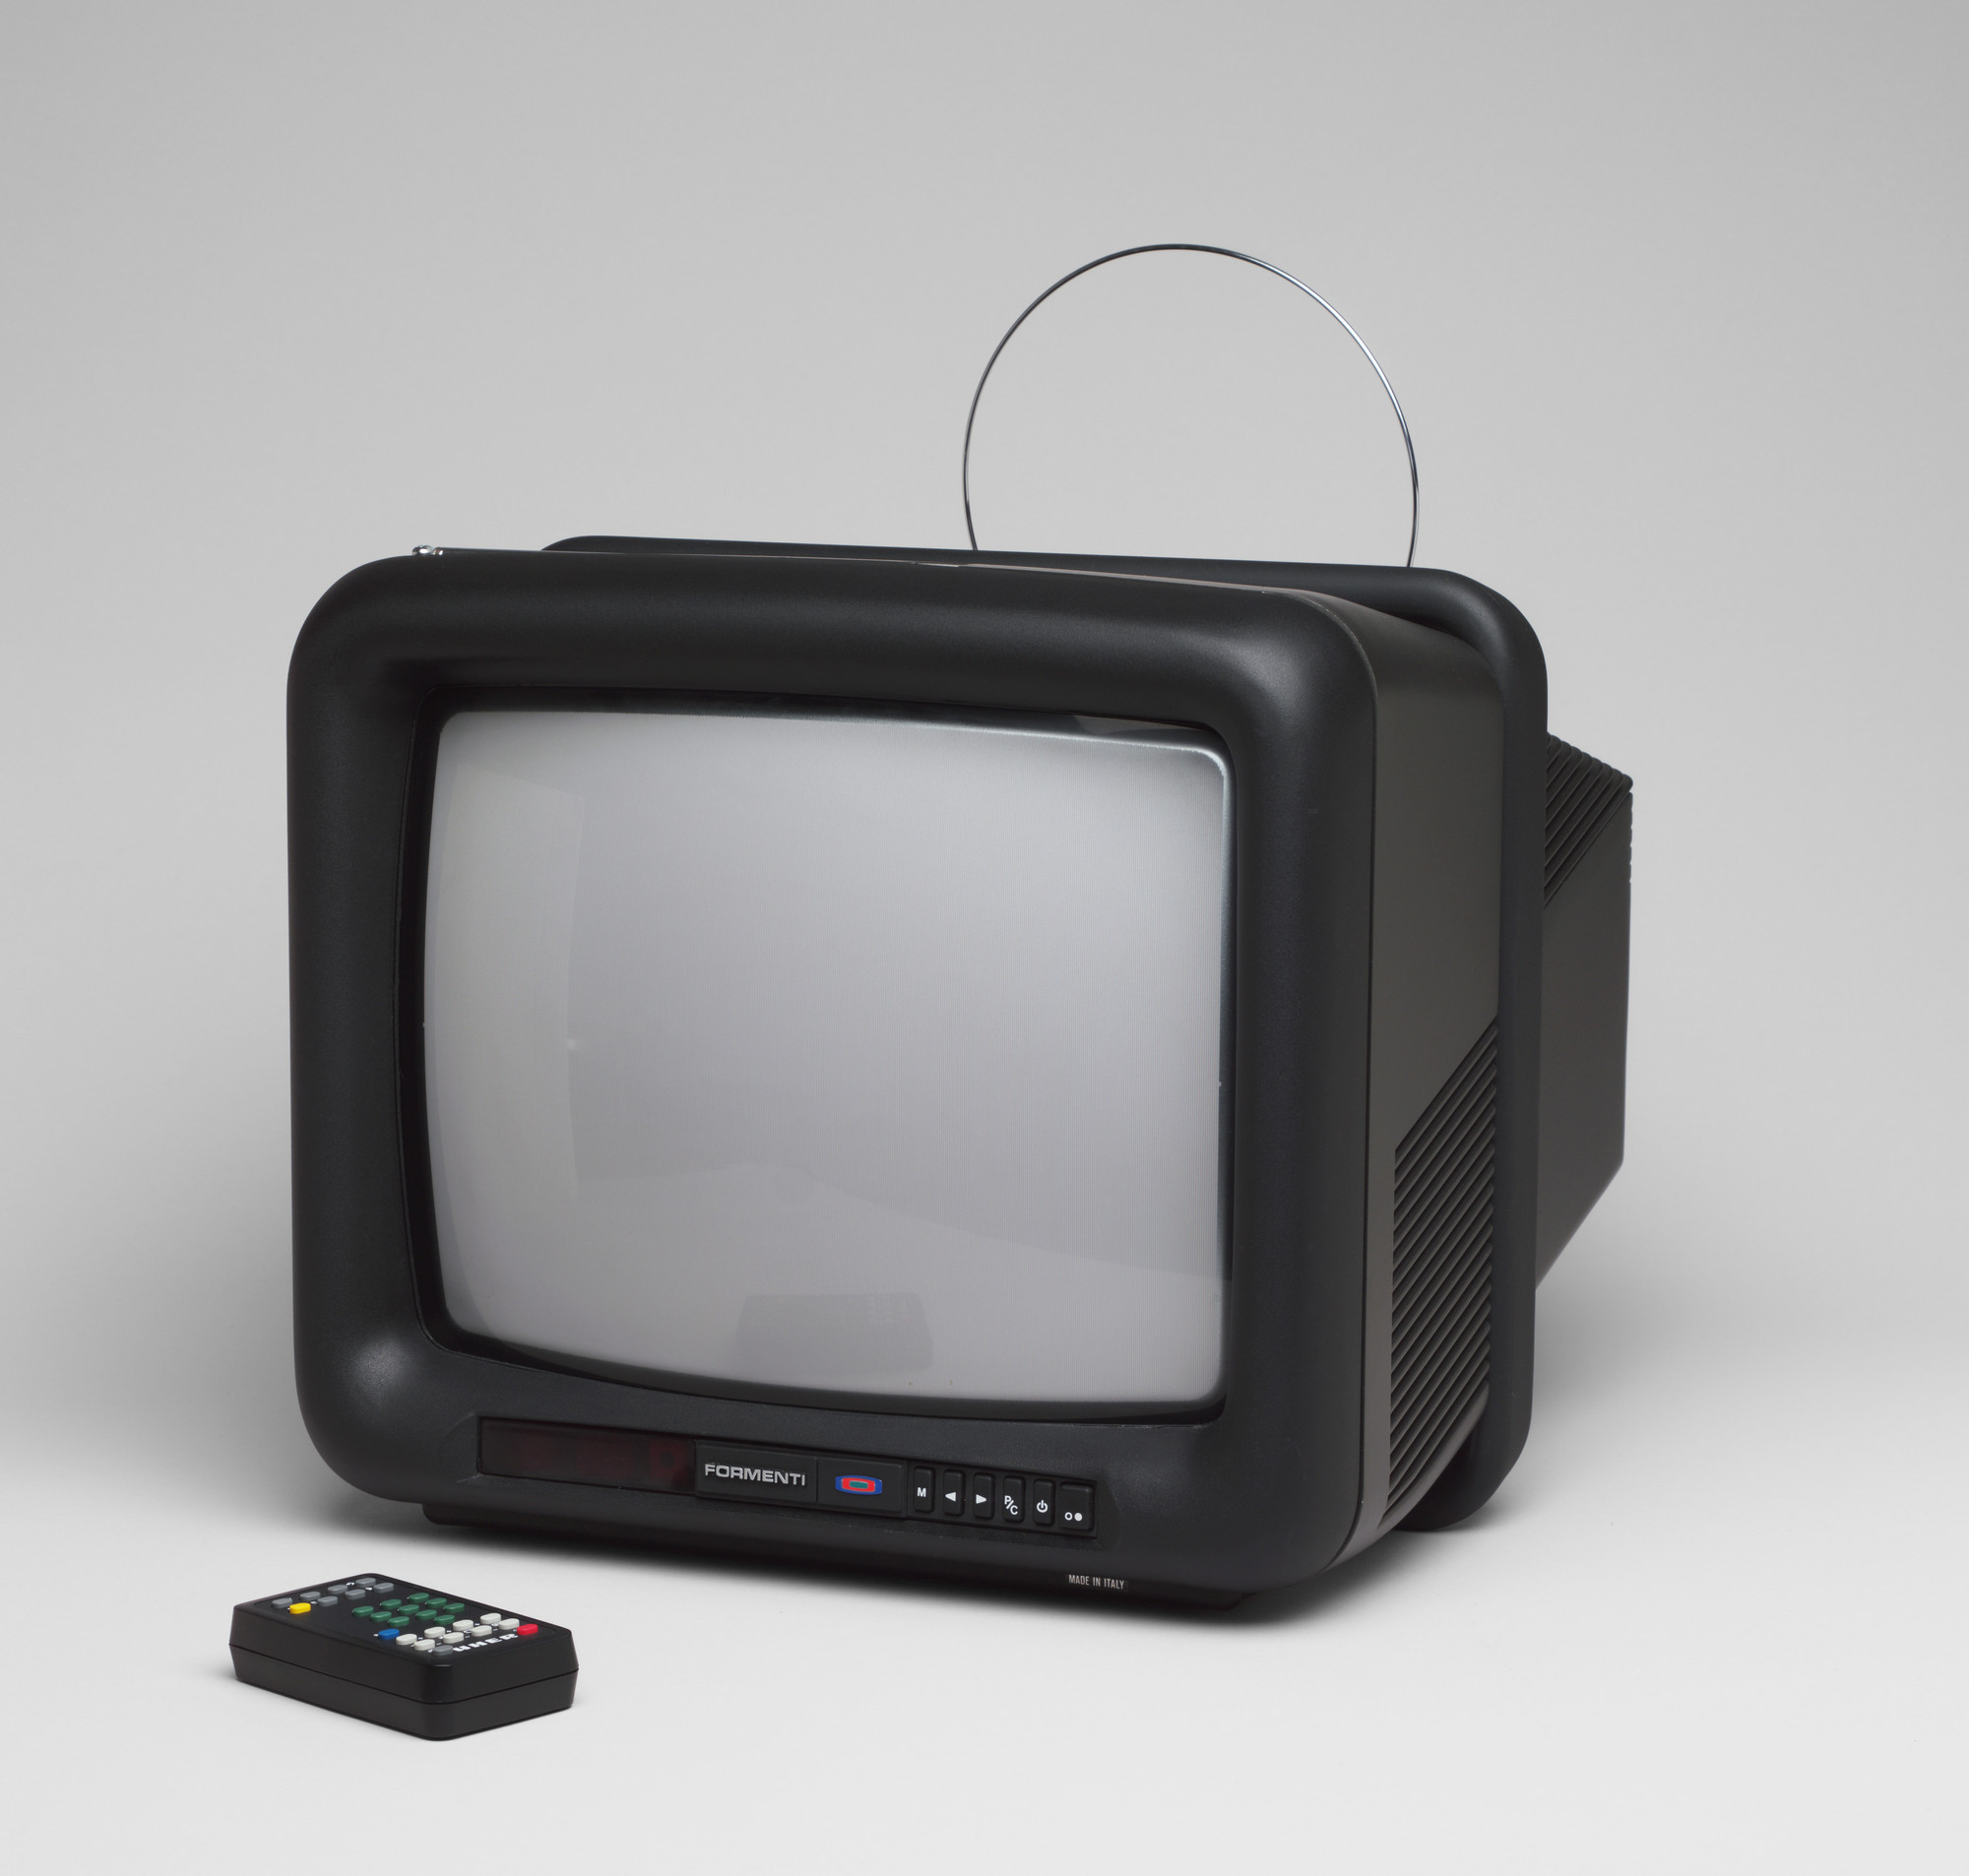 Centrokappa Design and Communication. Color Television. 1980